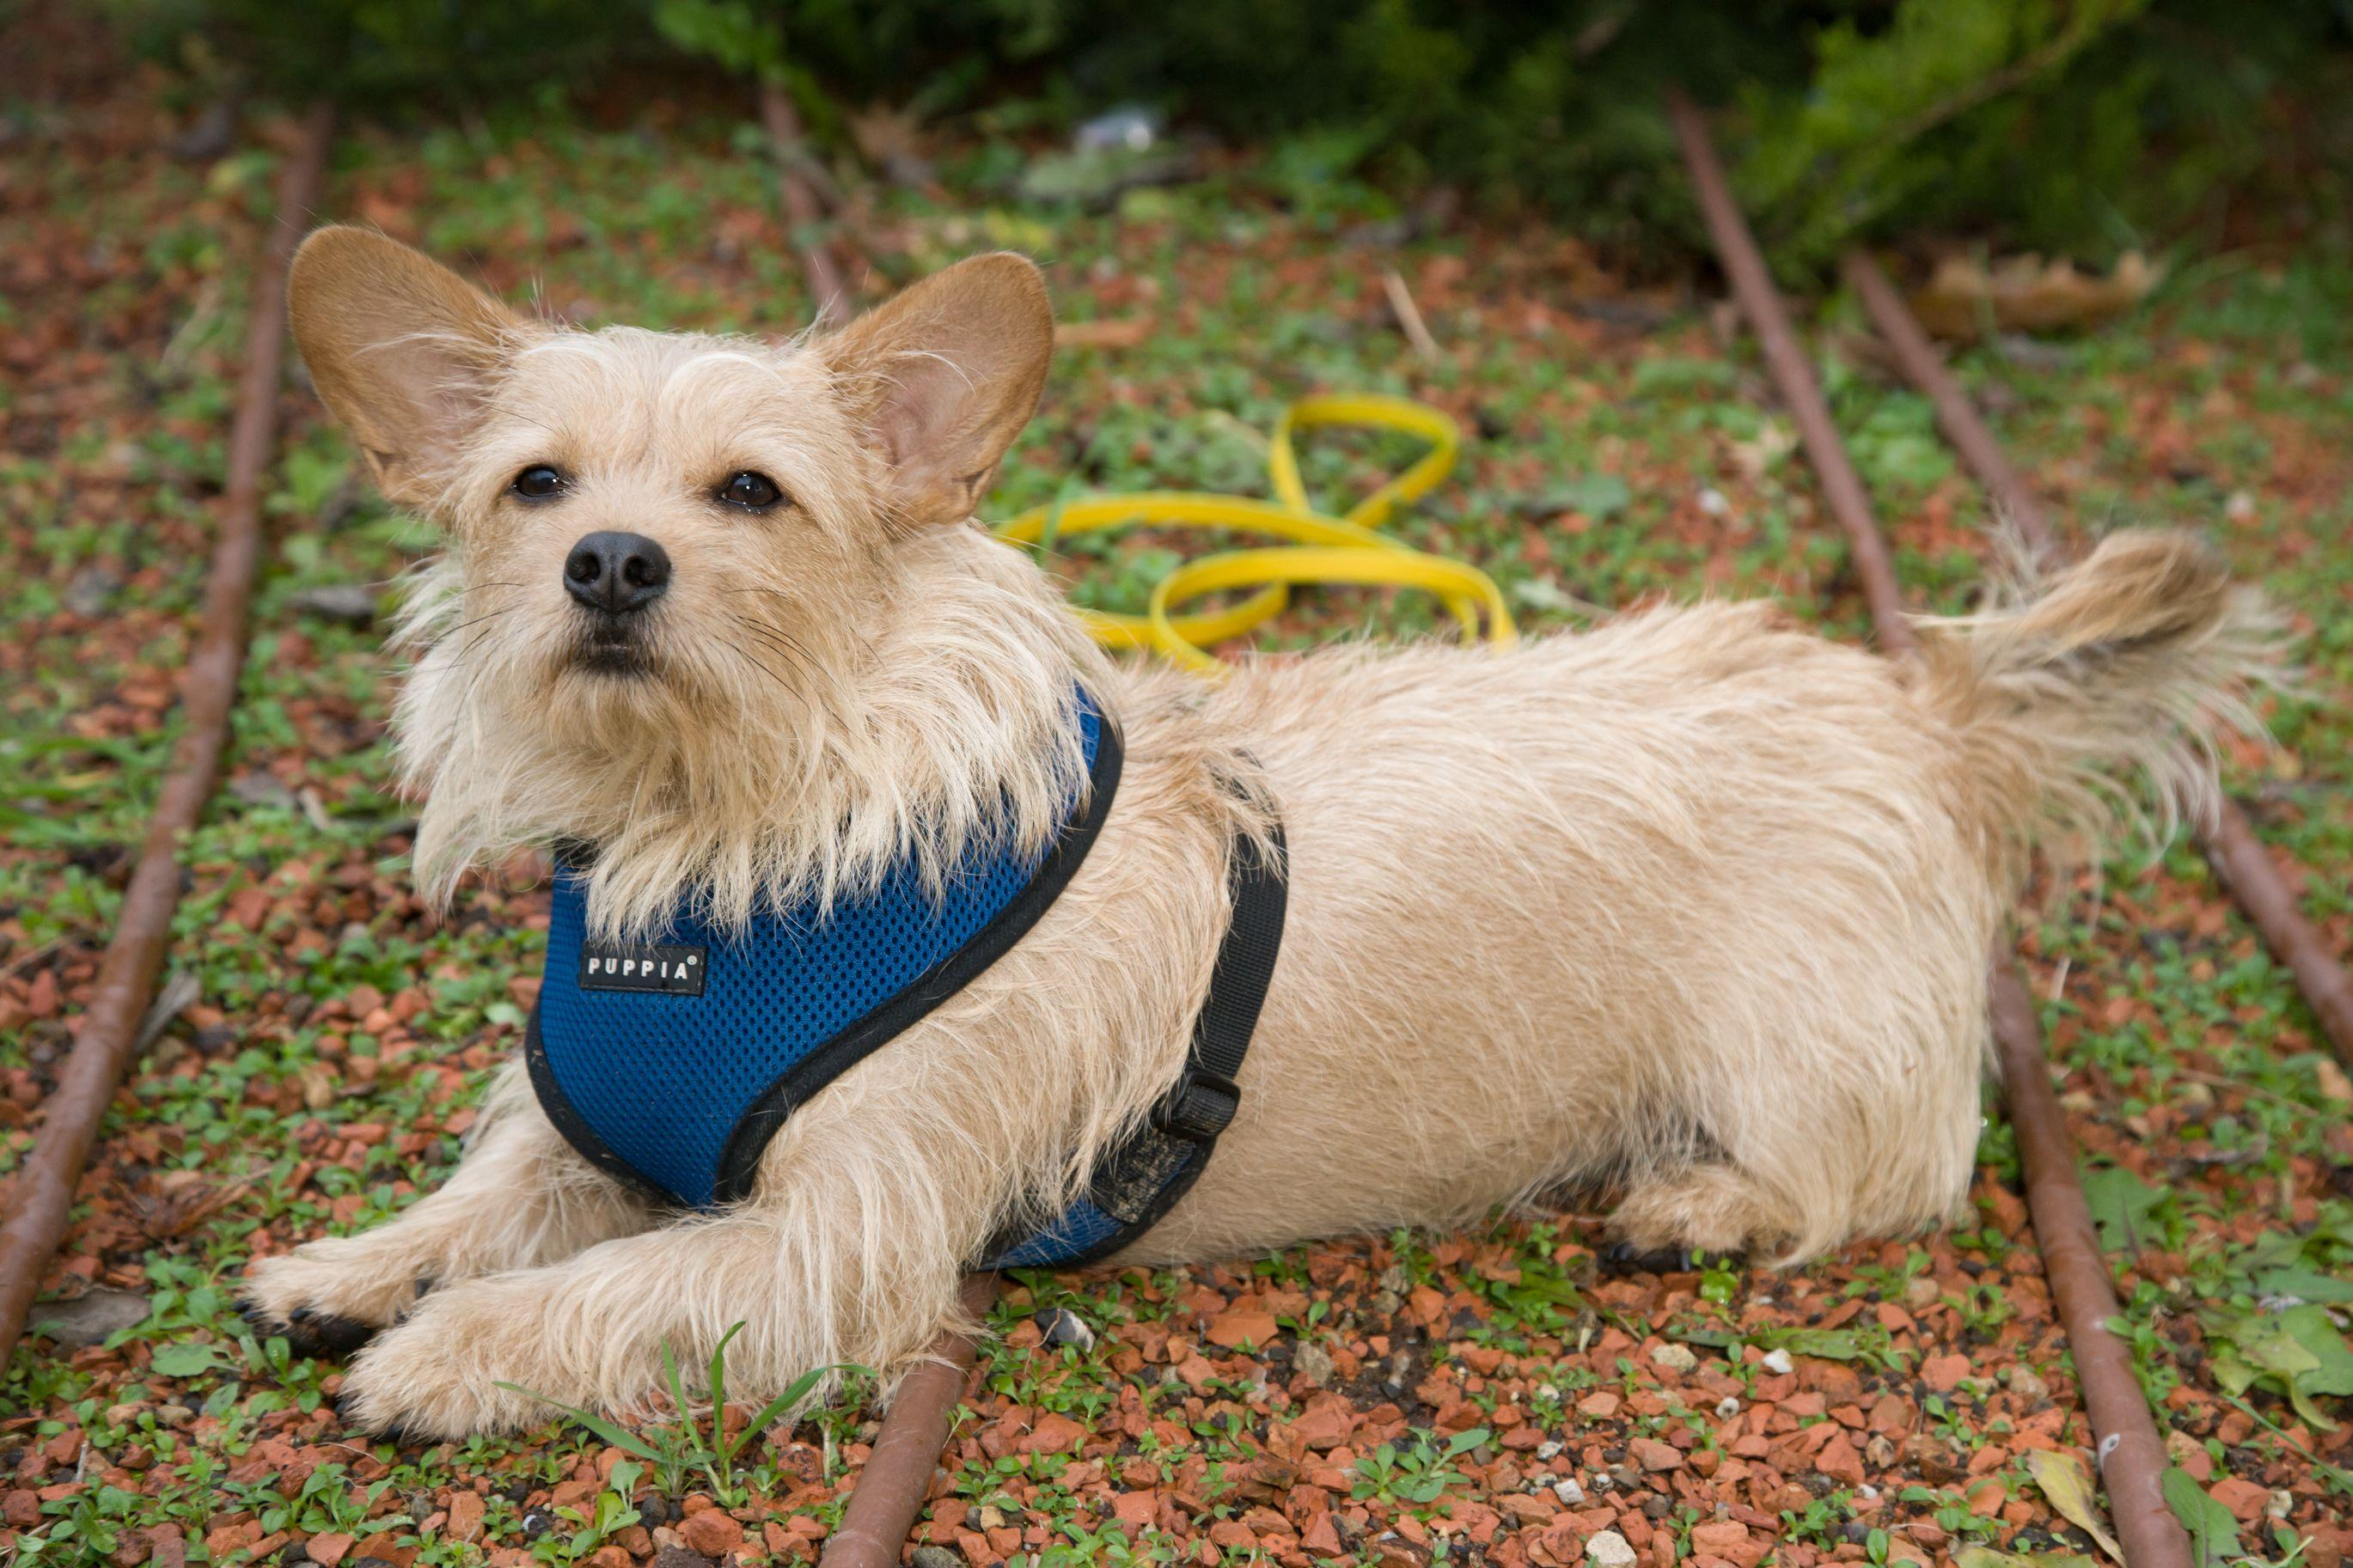 Small dog with harness and leash